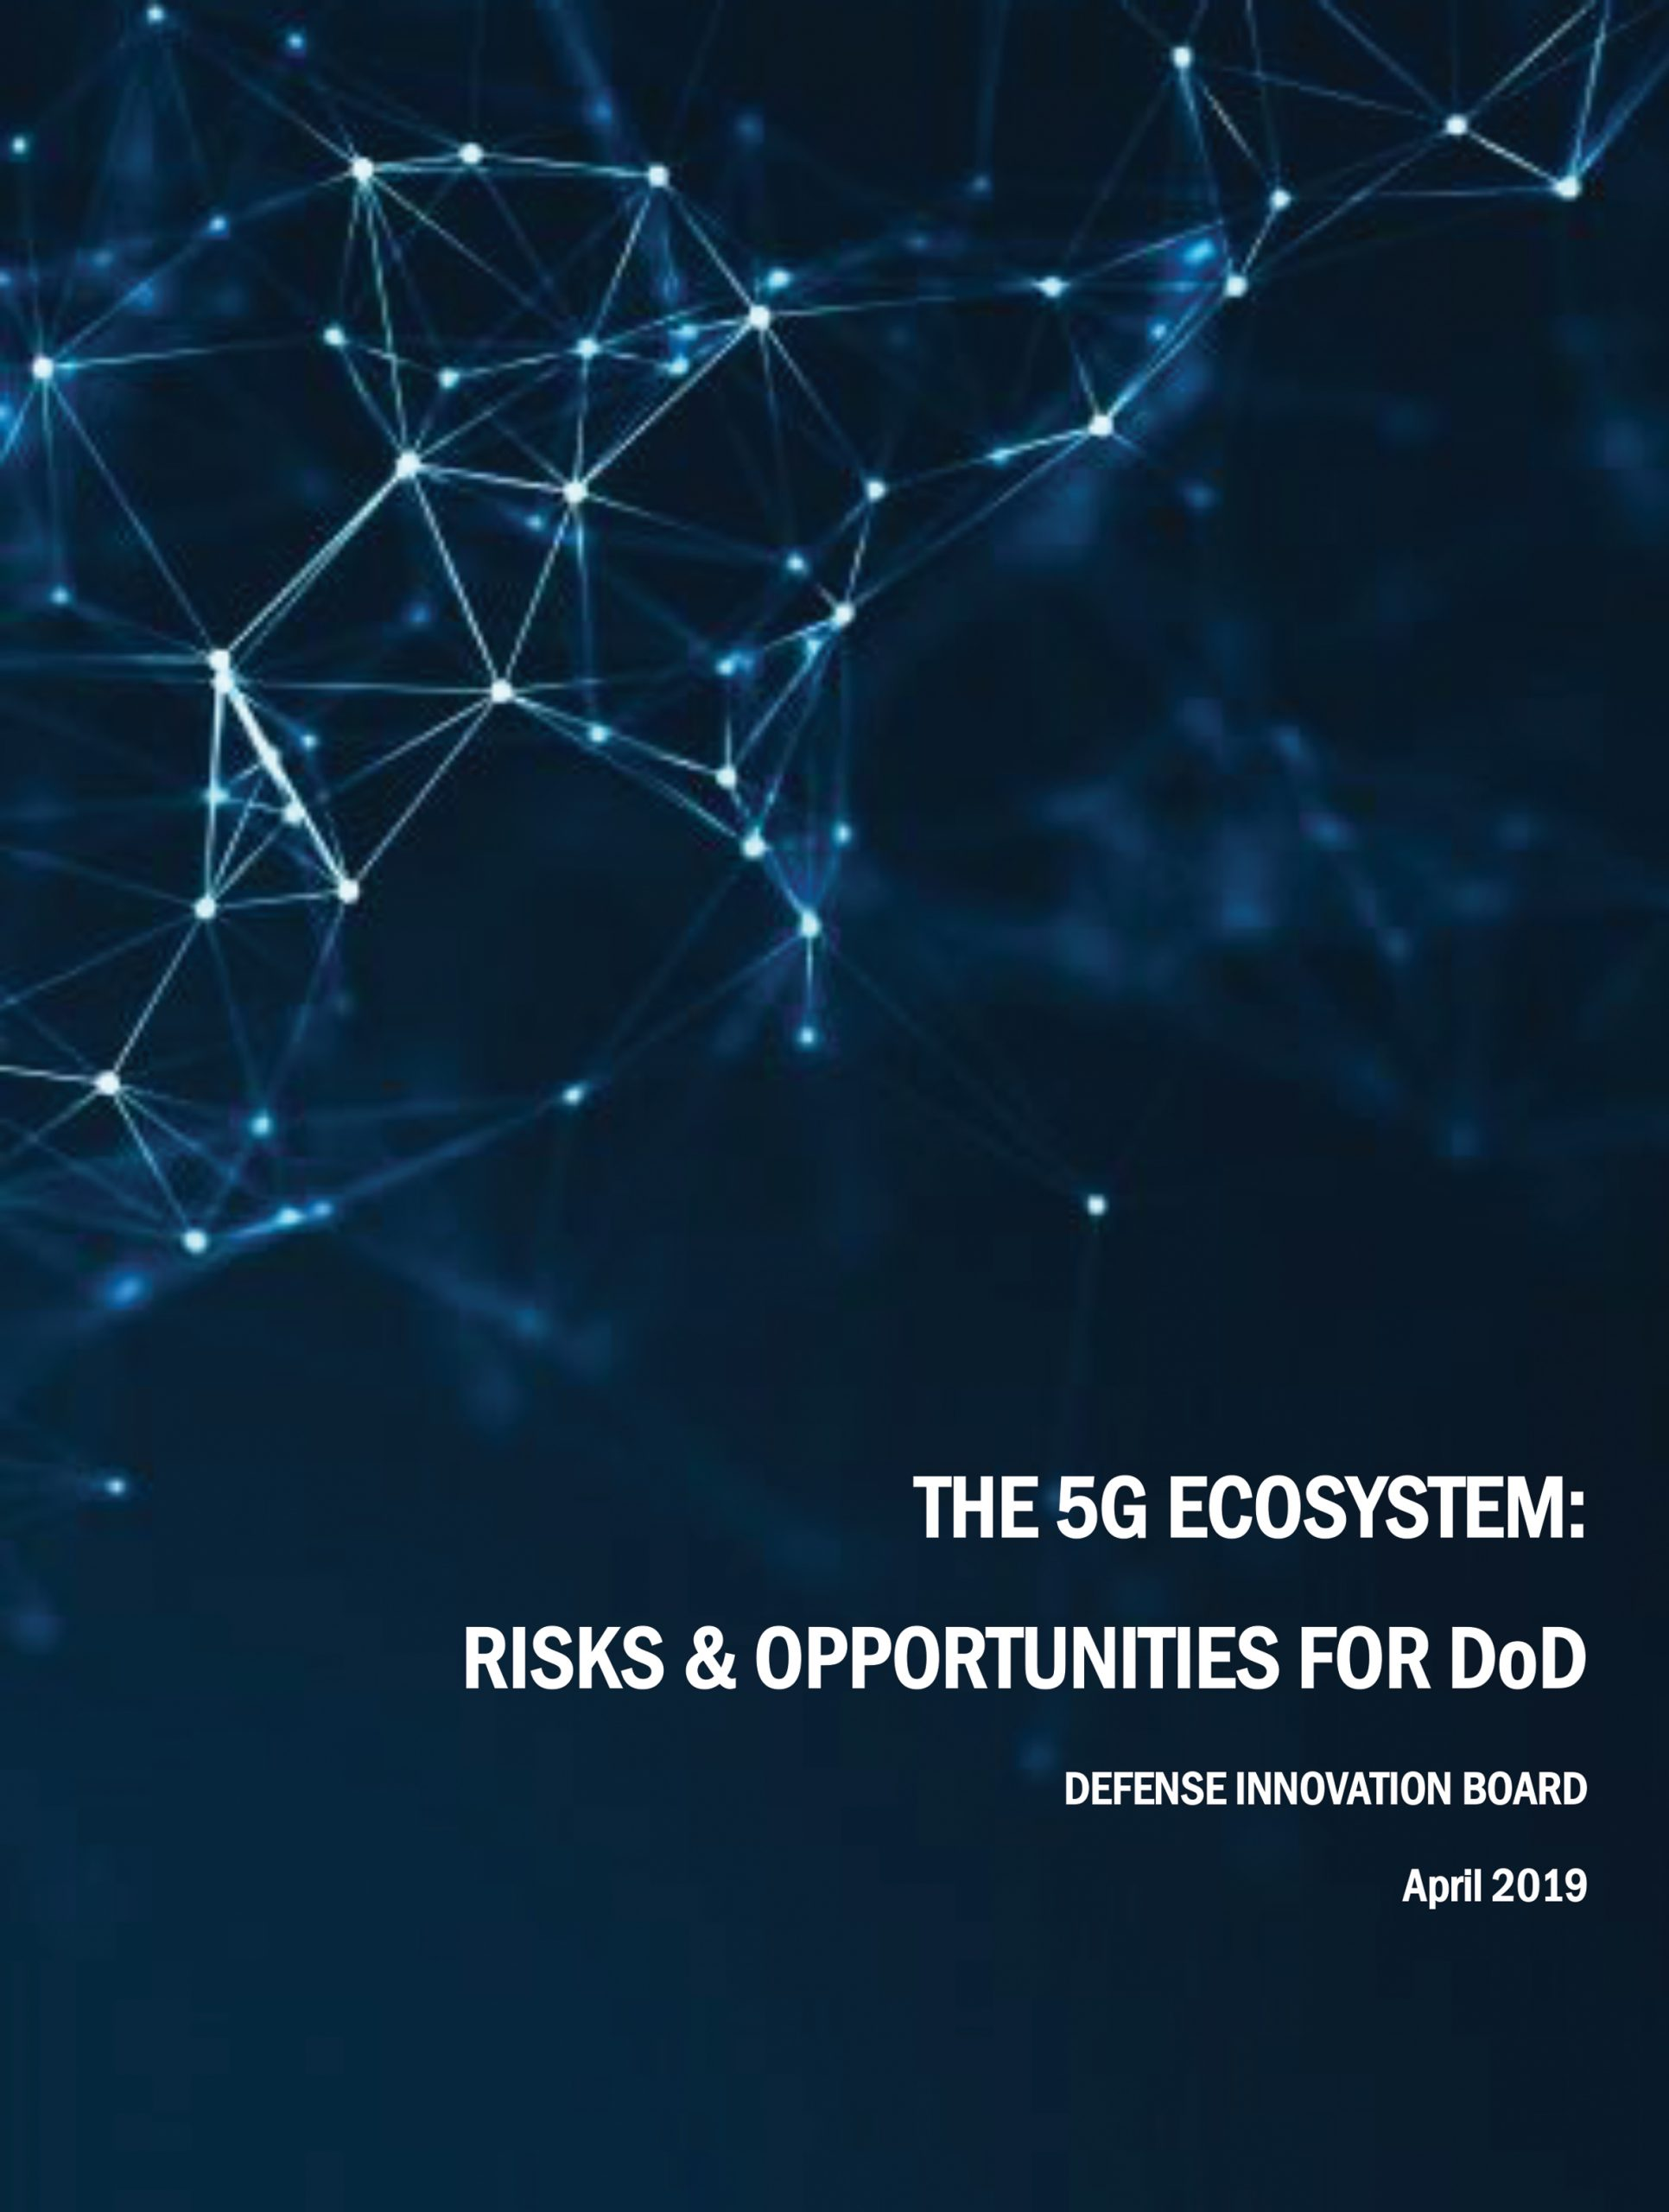 5G Ecosystem Cover